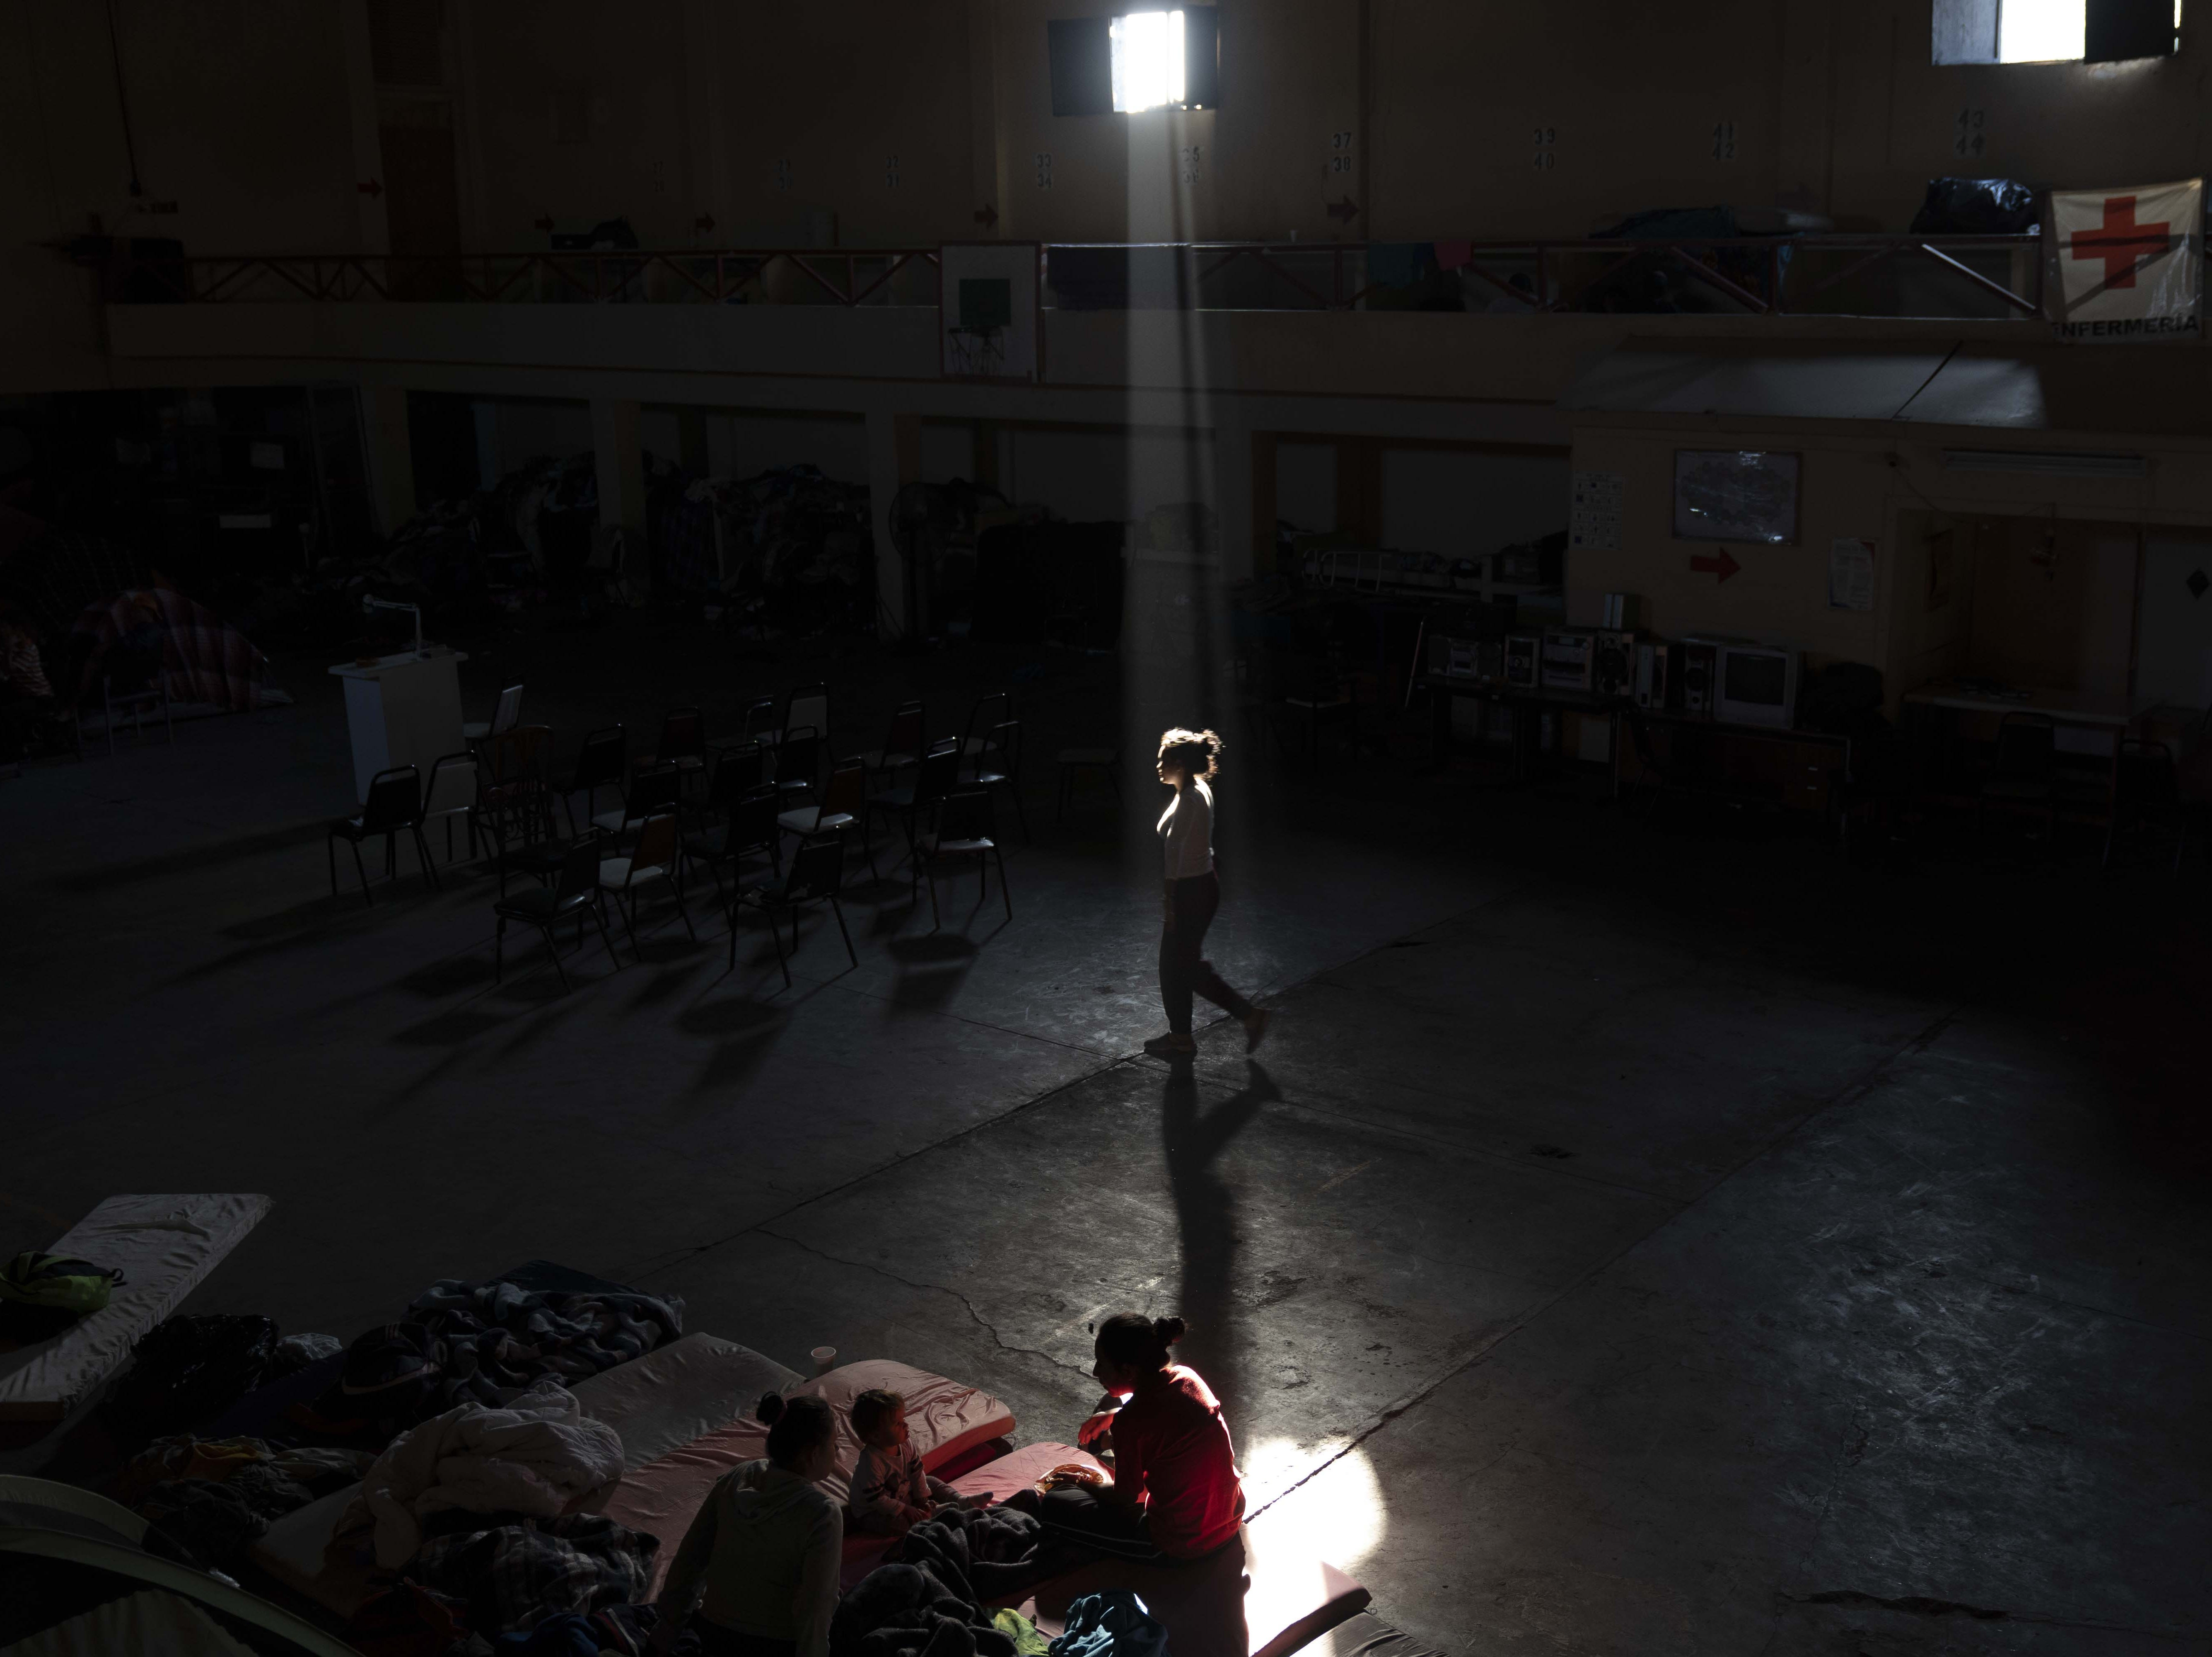 Central Americans from Honduras and El Salvador stay at a shelter run by Grupo de Ayuda para el Migrante en Mexicali, a Christian-based group in Mexicali, Mexico. Some migrants are waiting to go to Tijuana to join others in the migrant caravan to cross the U.S. port of entry and ask for asylum.